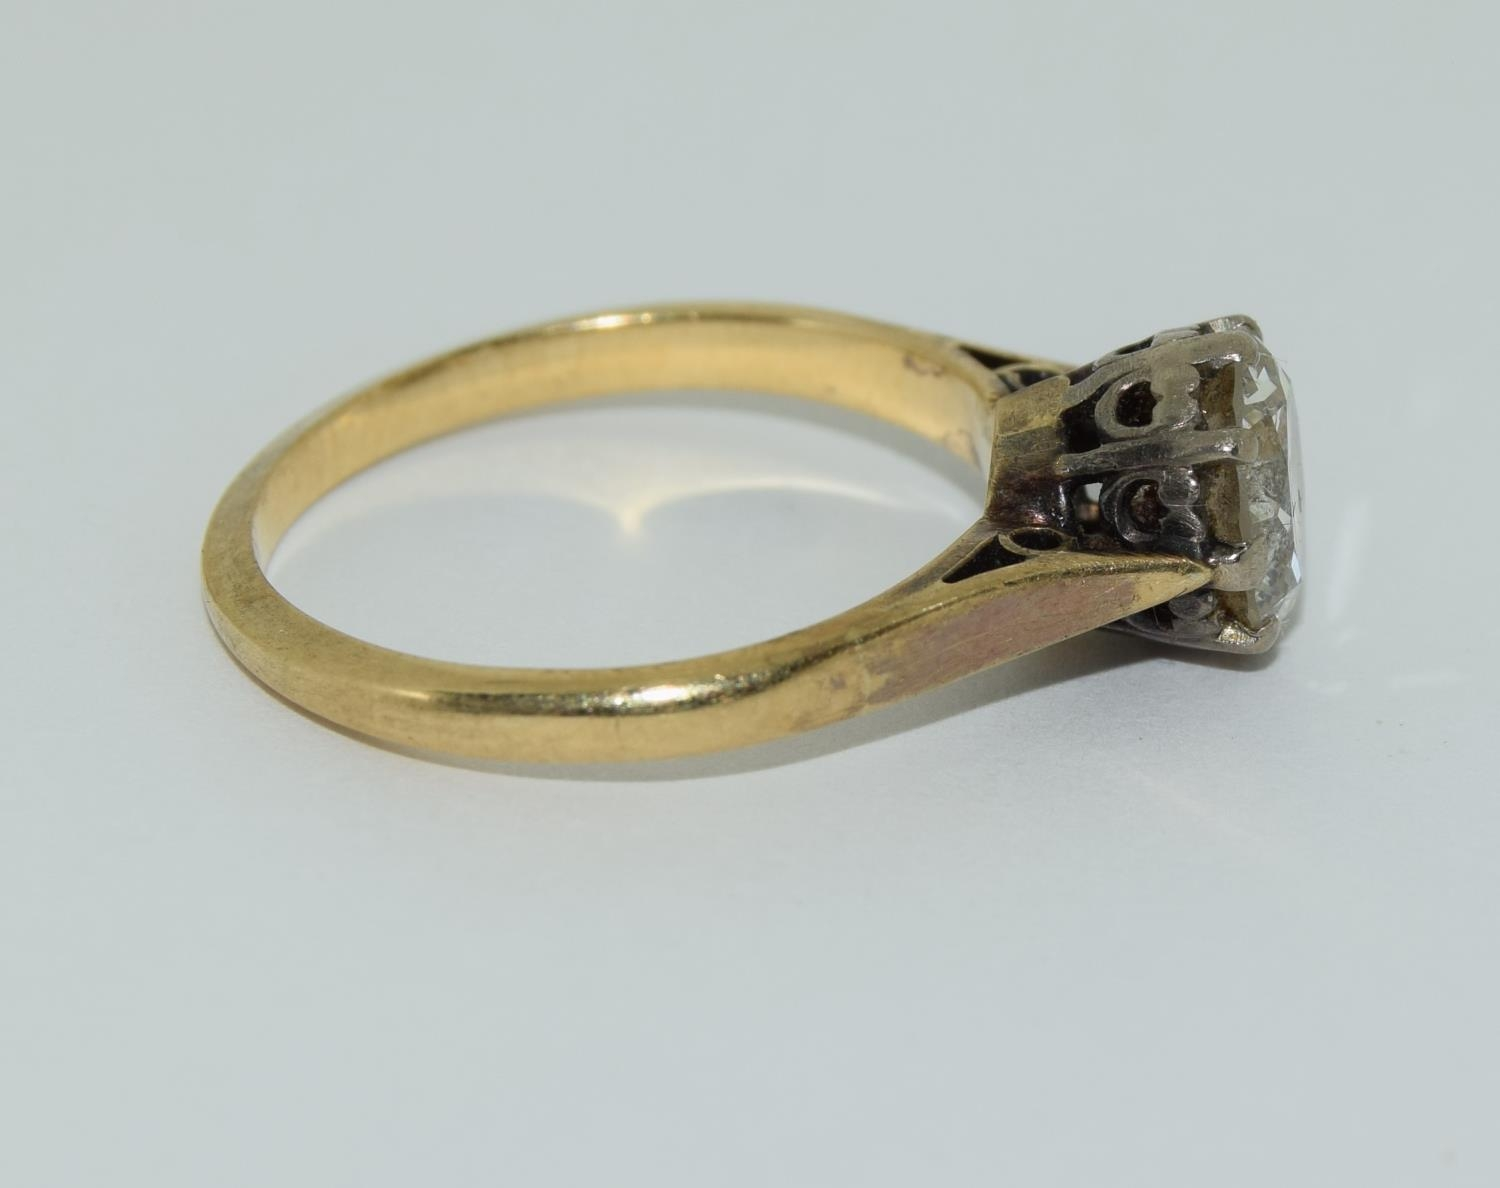 An 18ct gold ladies diamond solitaire ring approx 1.5ct, Size M. - Image 2 of 6